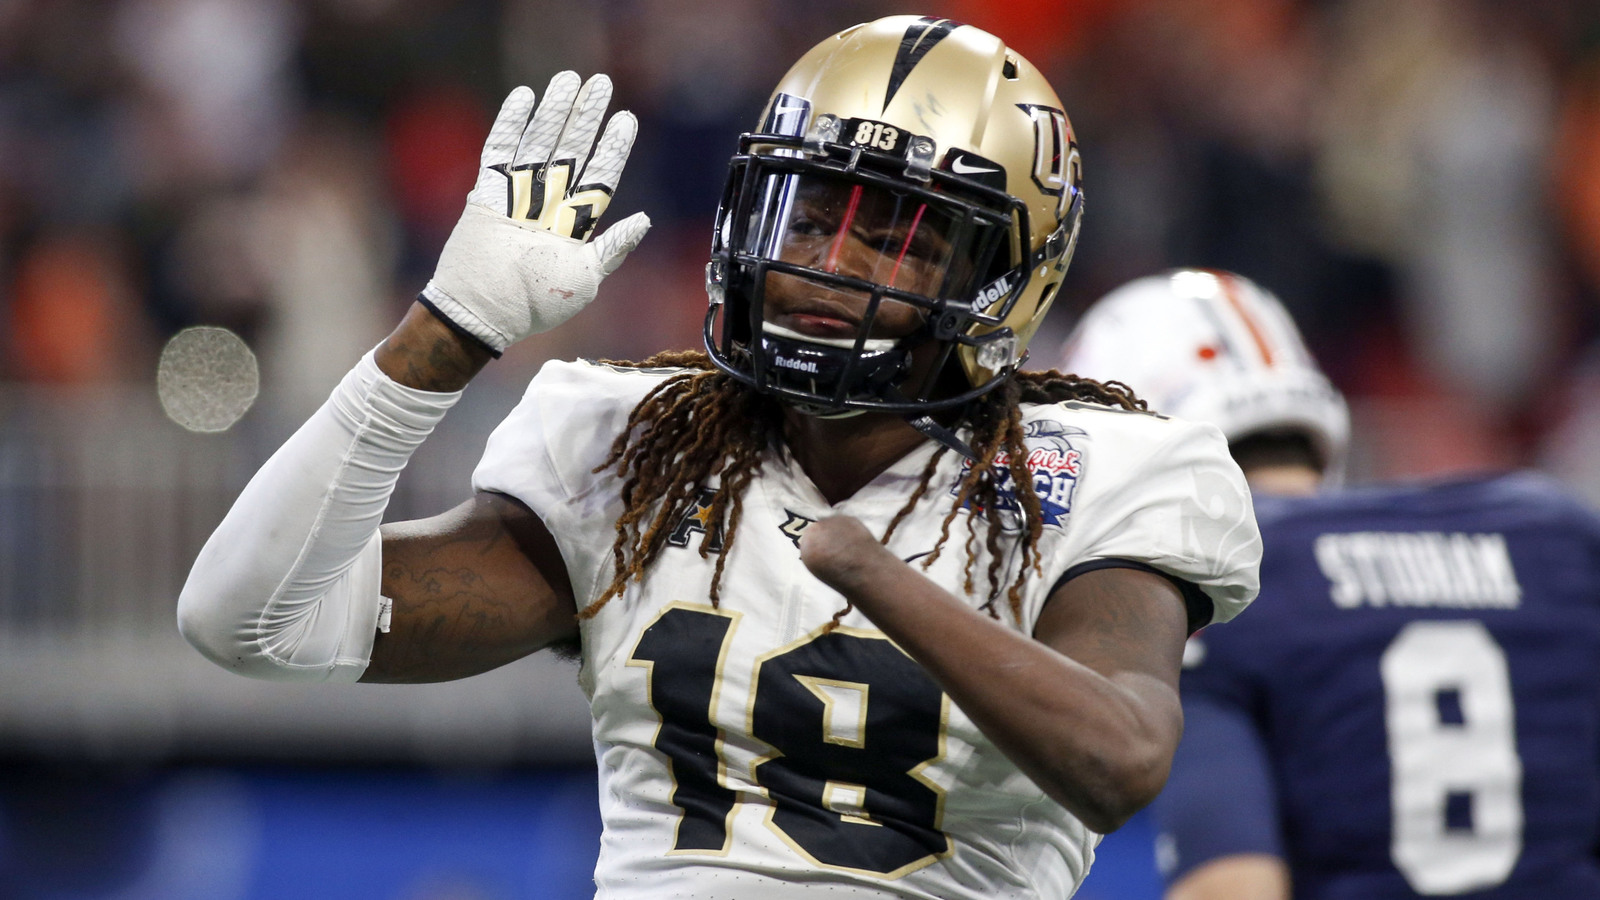 2018 NFL Draft: Shaquem Griffin throws up 20 bench press reps